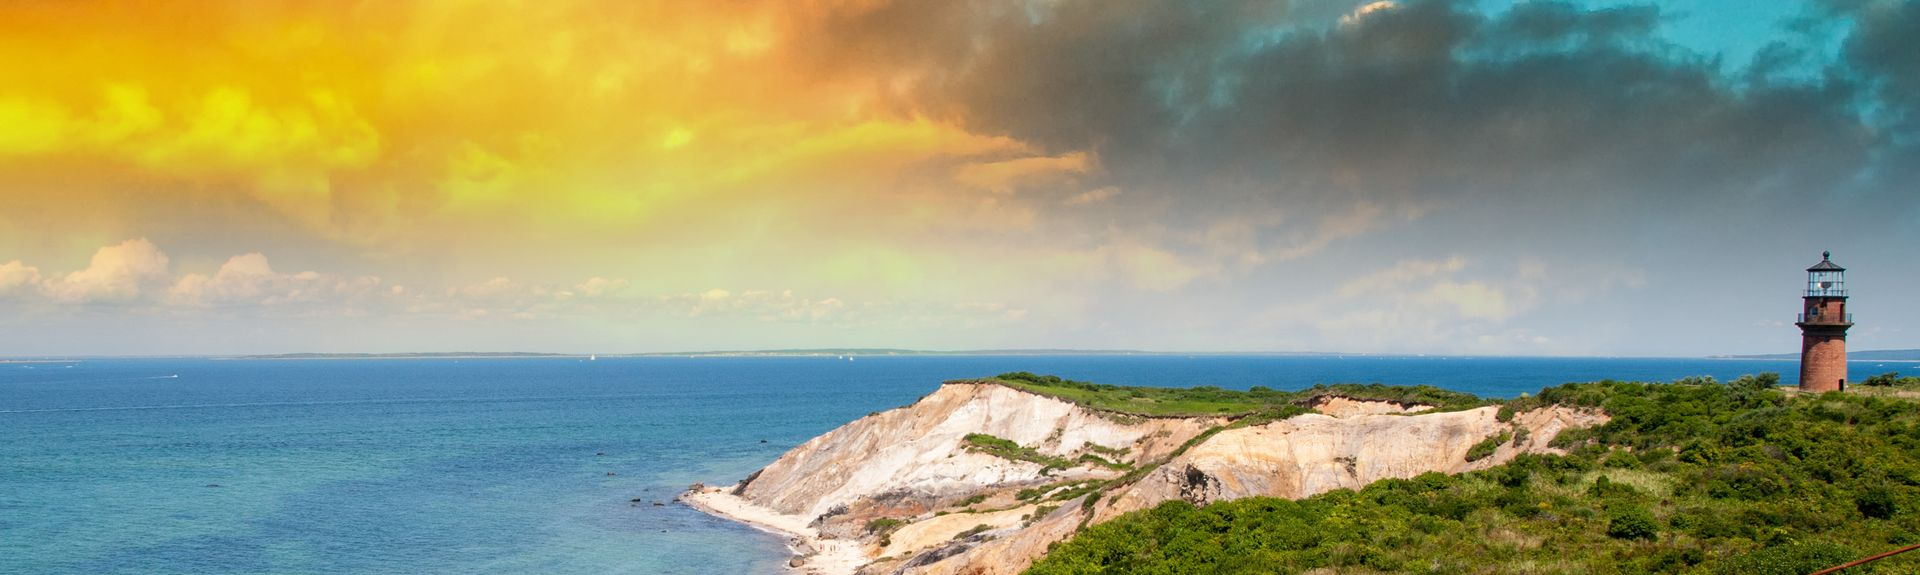 Martha's Vineyard, Massachusetts, Estados Unidos